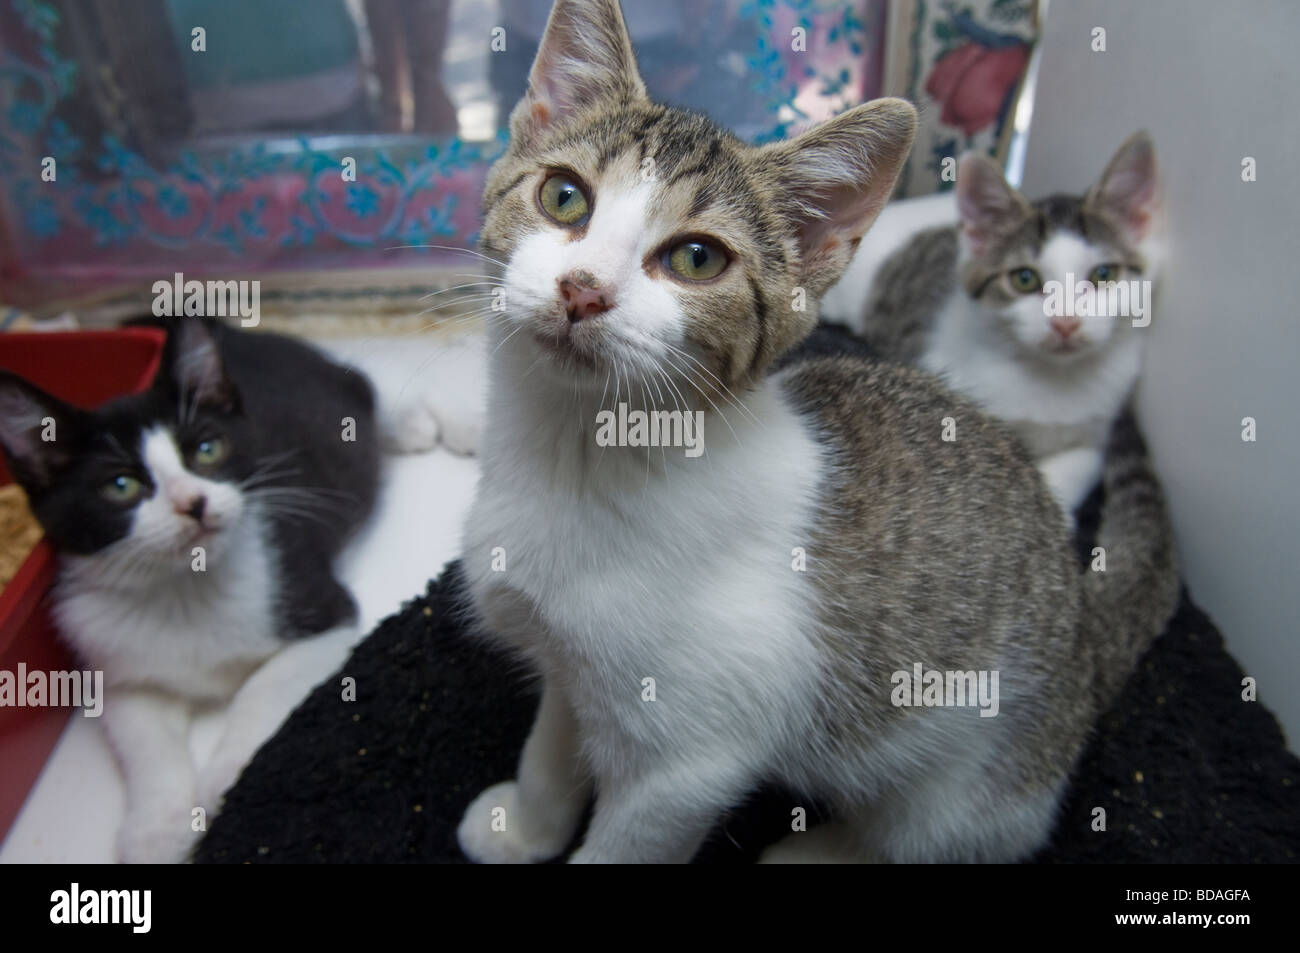 Rescued stray 11 week old kittens in the window of a pet store in New York - Stock Image